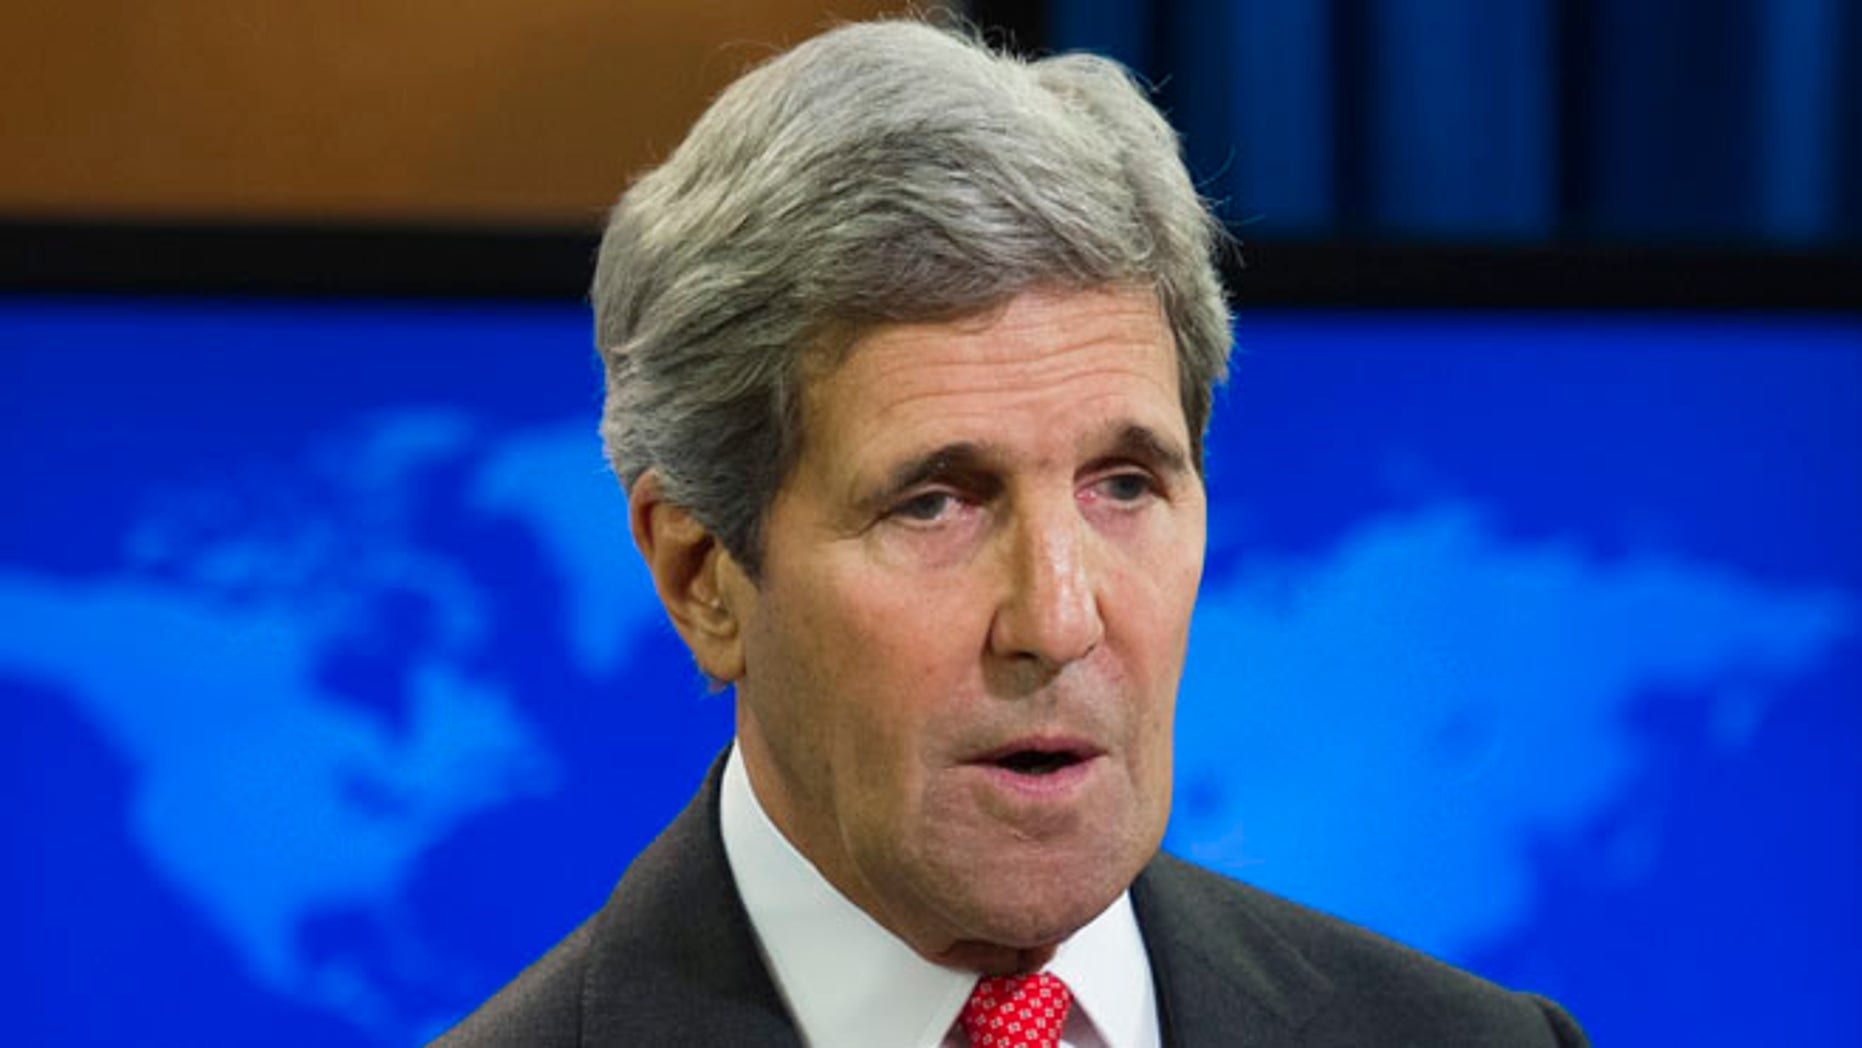 FILE: July 28, 2014: Secretary of State John Kerry speaks at the State Department in Washington, D.C.